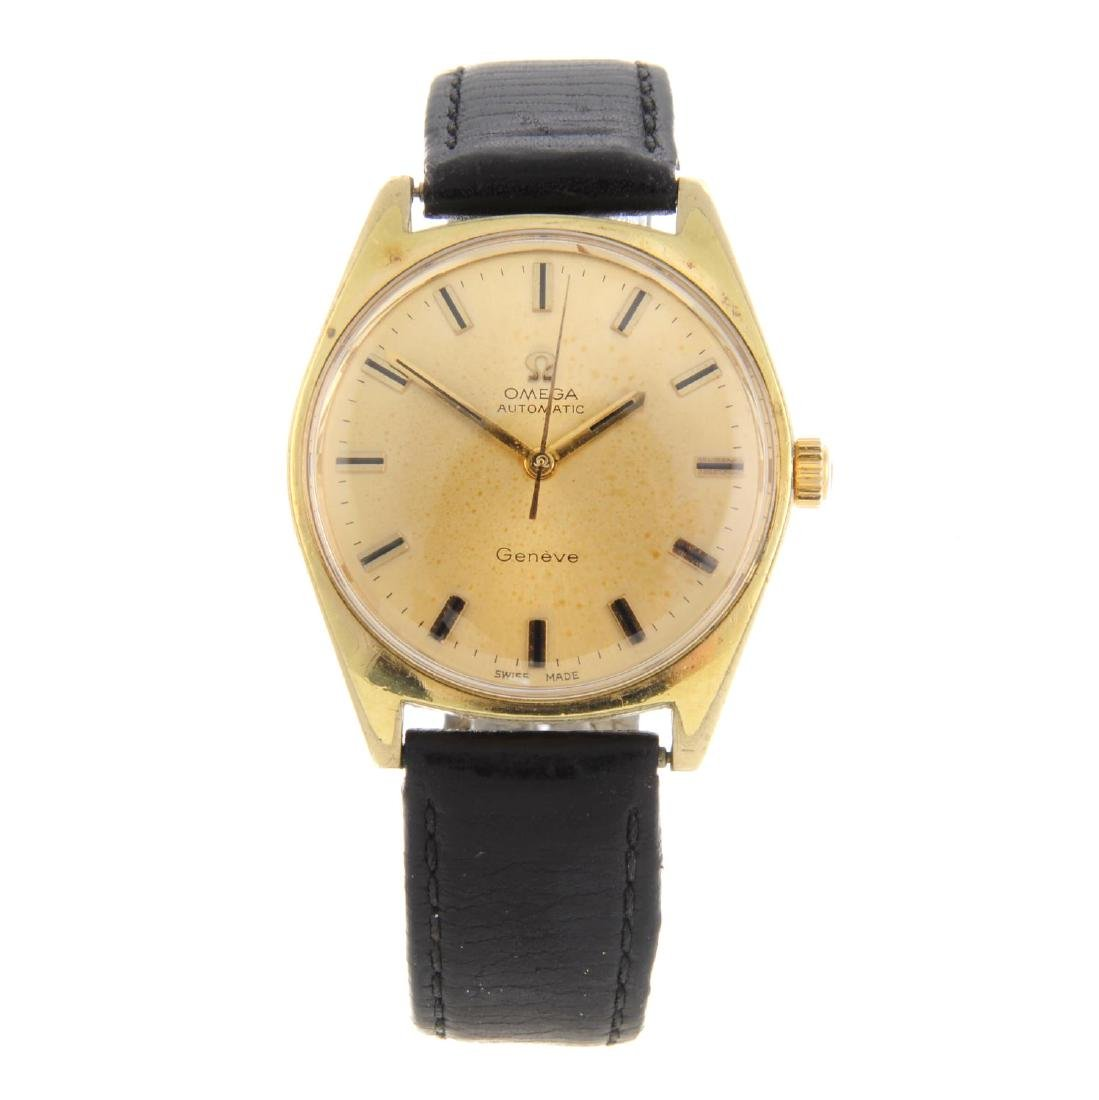 OMEGA - a gentleman's Genève wrist watch. Gold plated